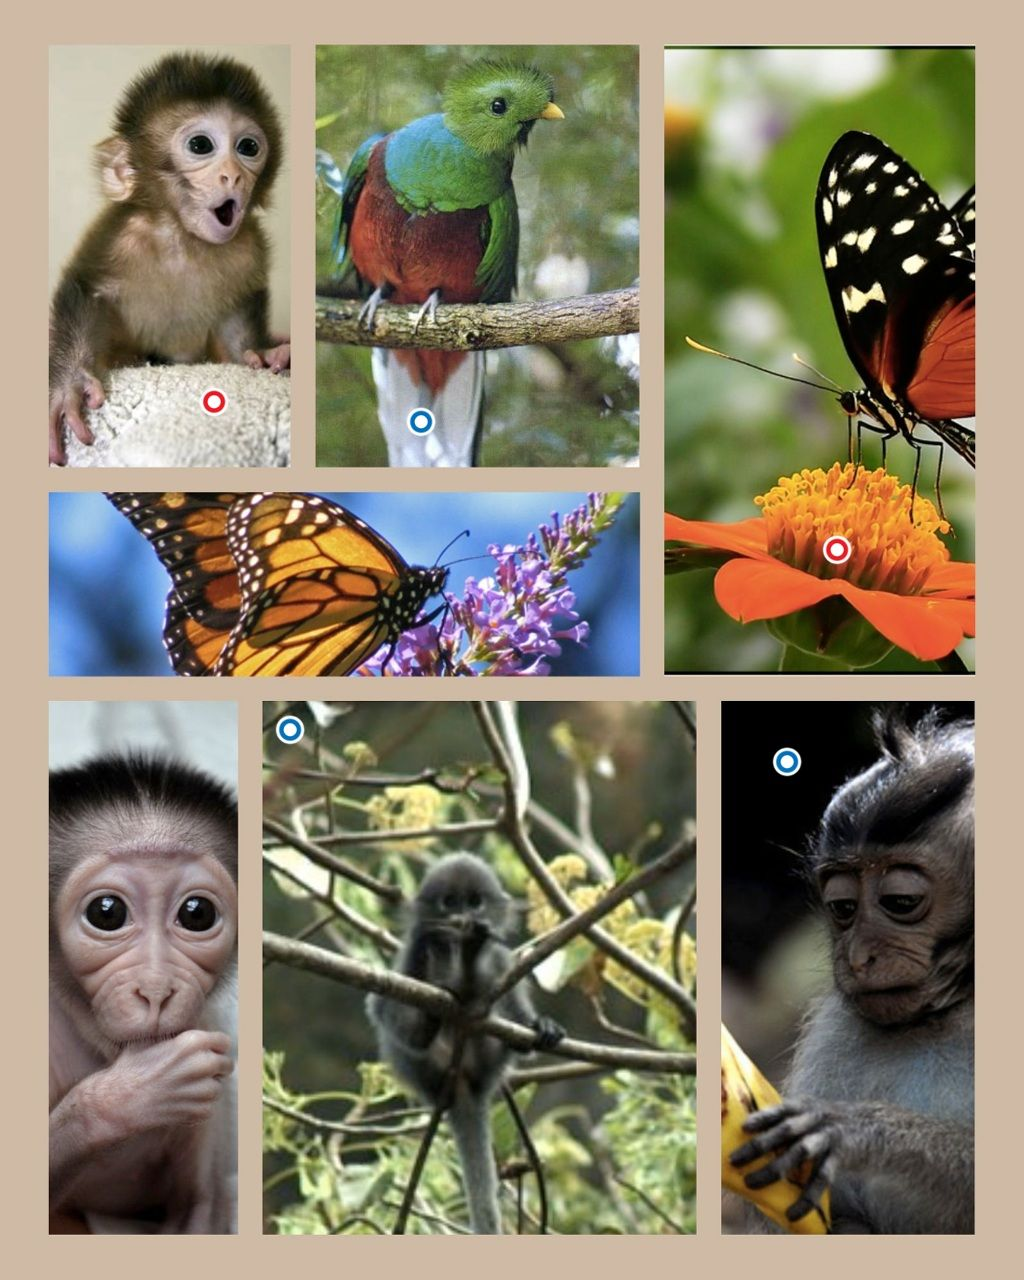 How Can We Use Pic Collage And Thinglink Apps To Practice